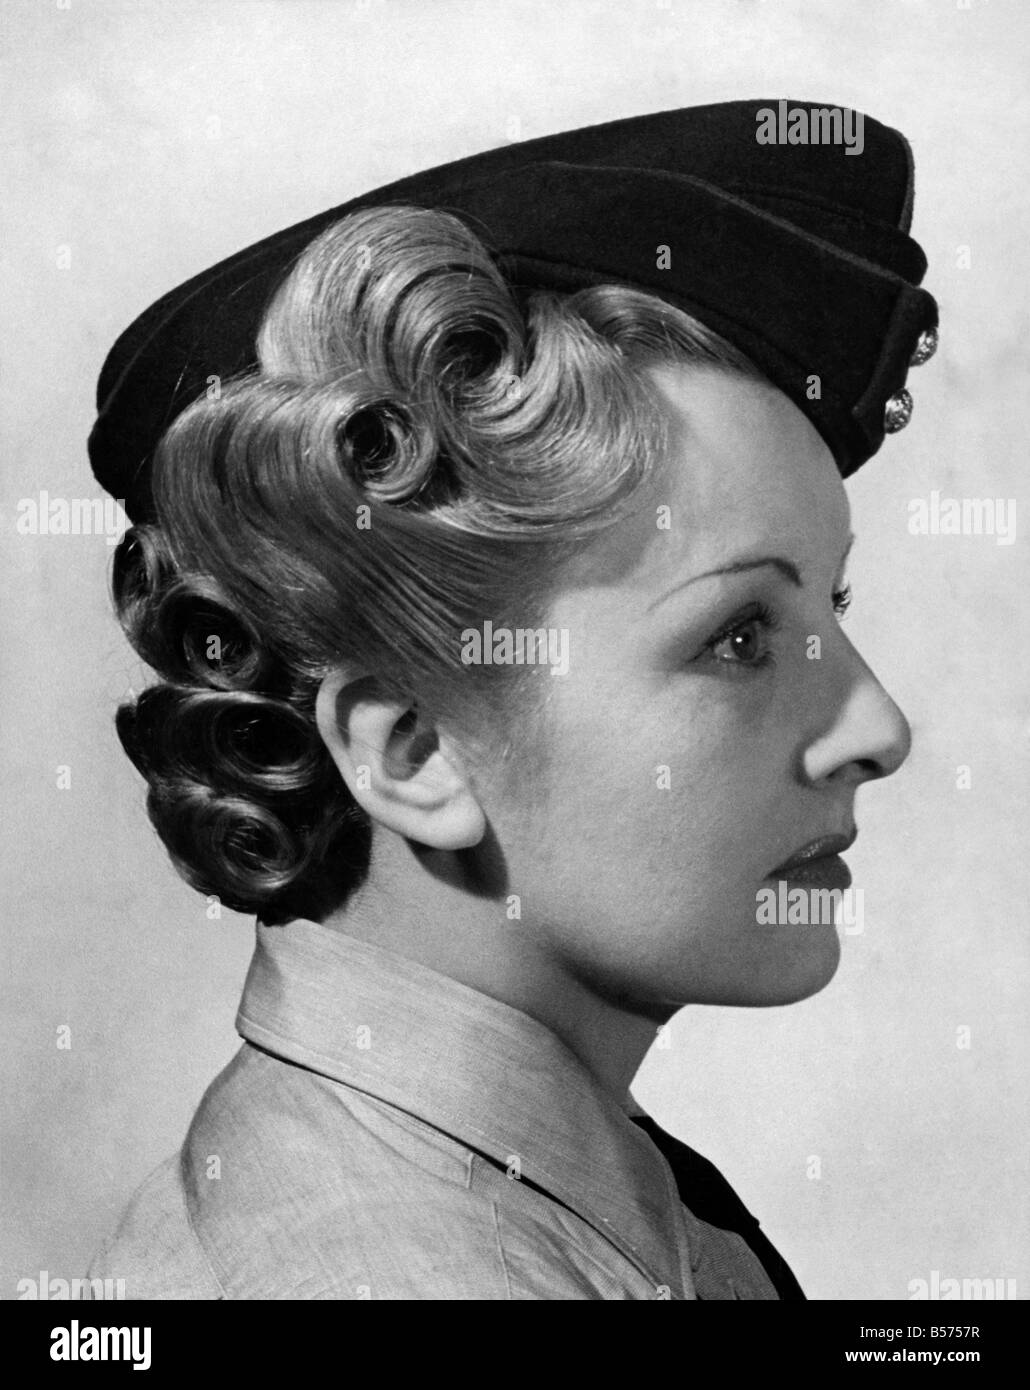 Women Ats Ww2 High Resolution Stock Photography And Images